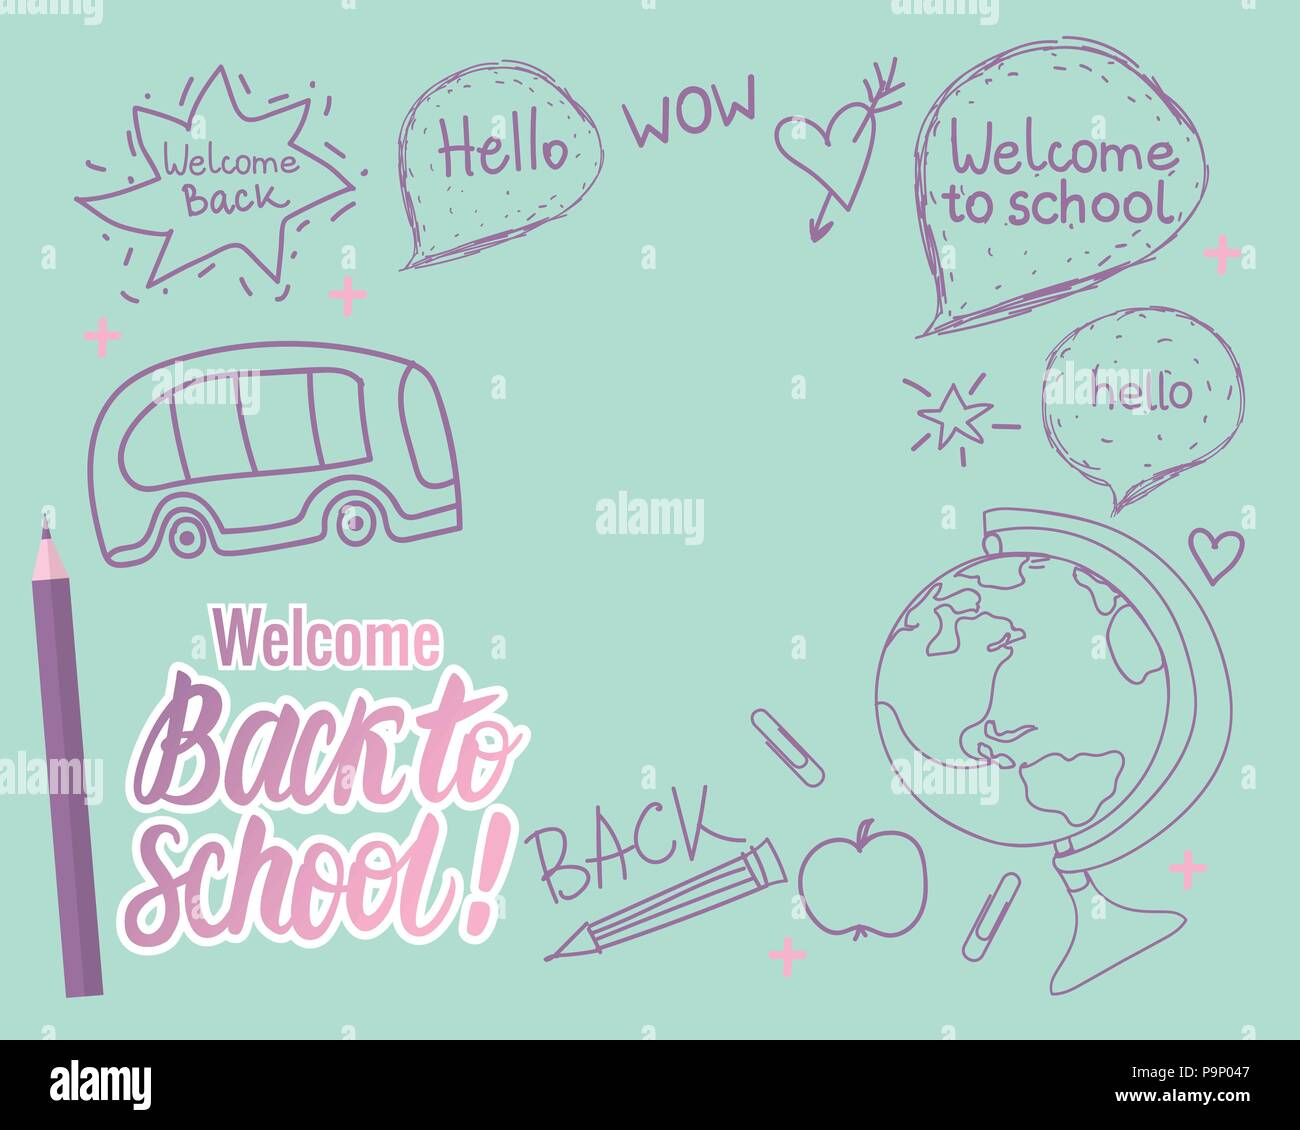 Welcome Back School Vector Illustration Stock Photos & Welcome Back ...